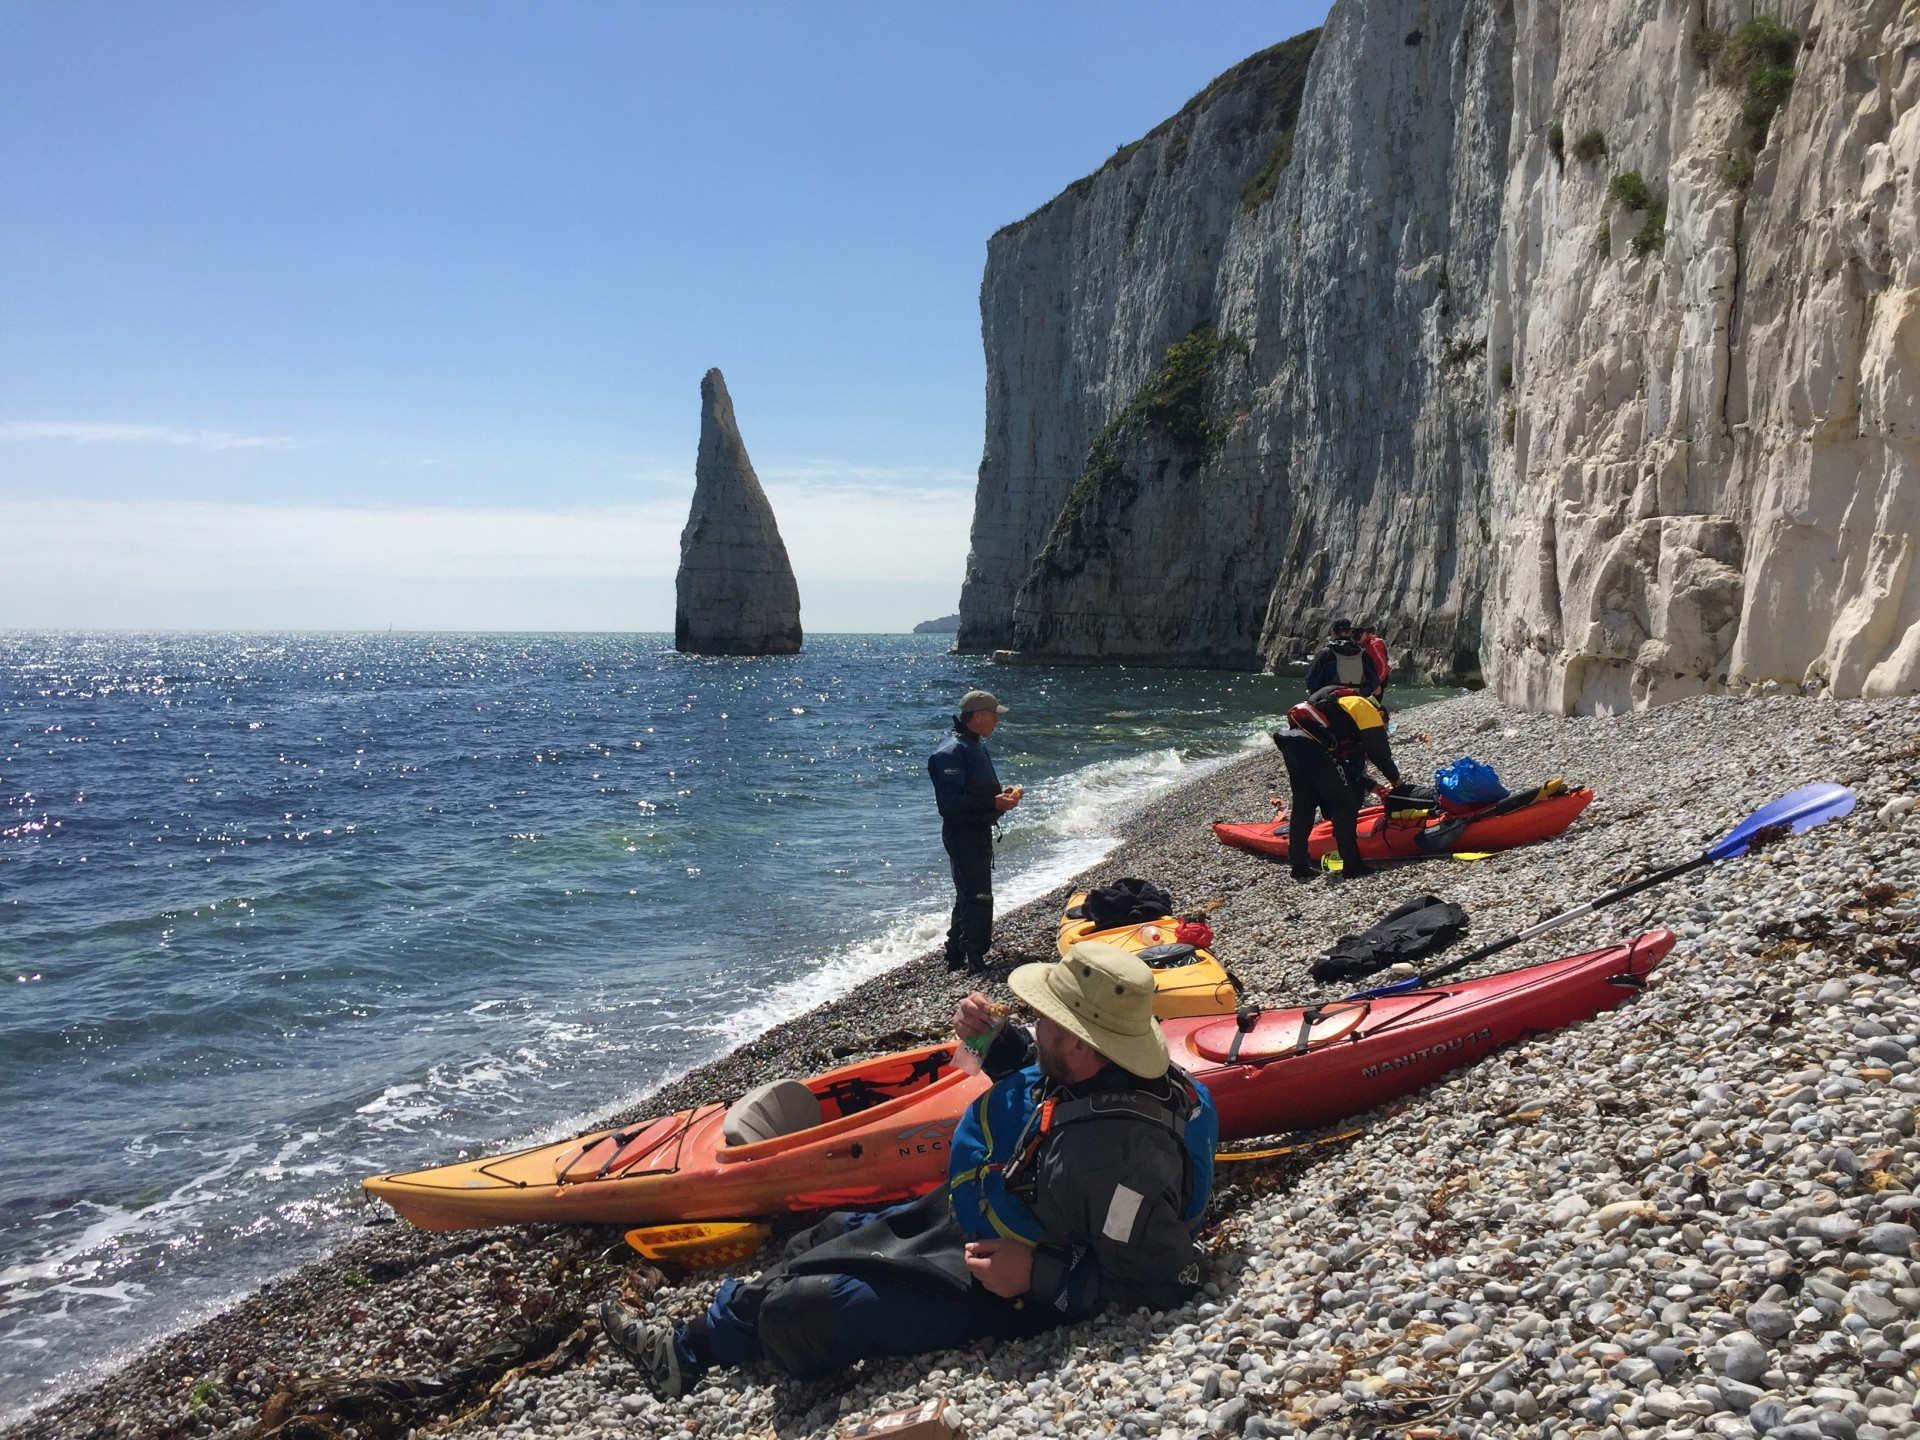 Kayakers sitting on a shingle beach near Old Harry rocks, Swanage, Dorset coast